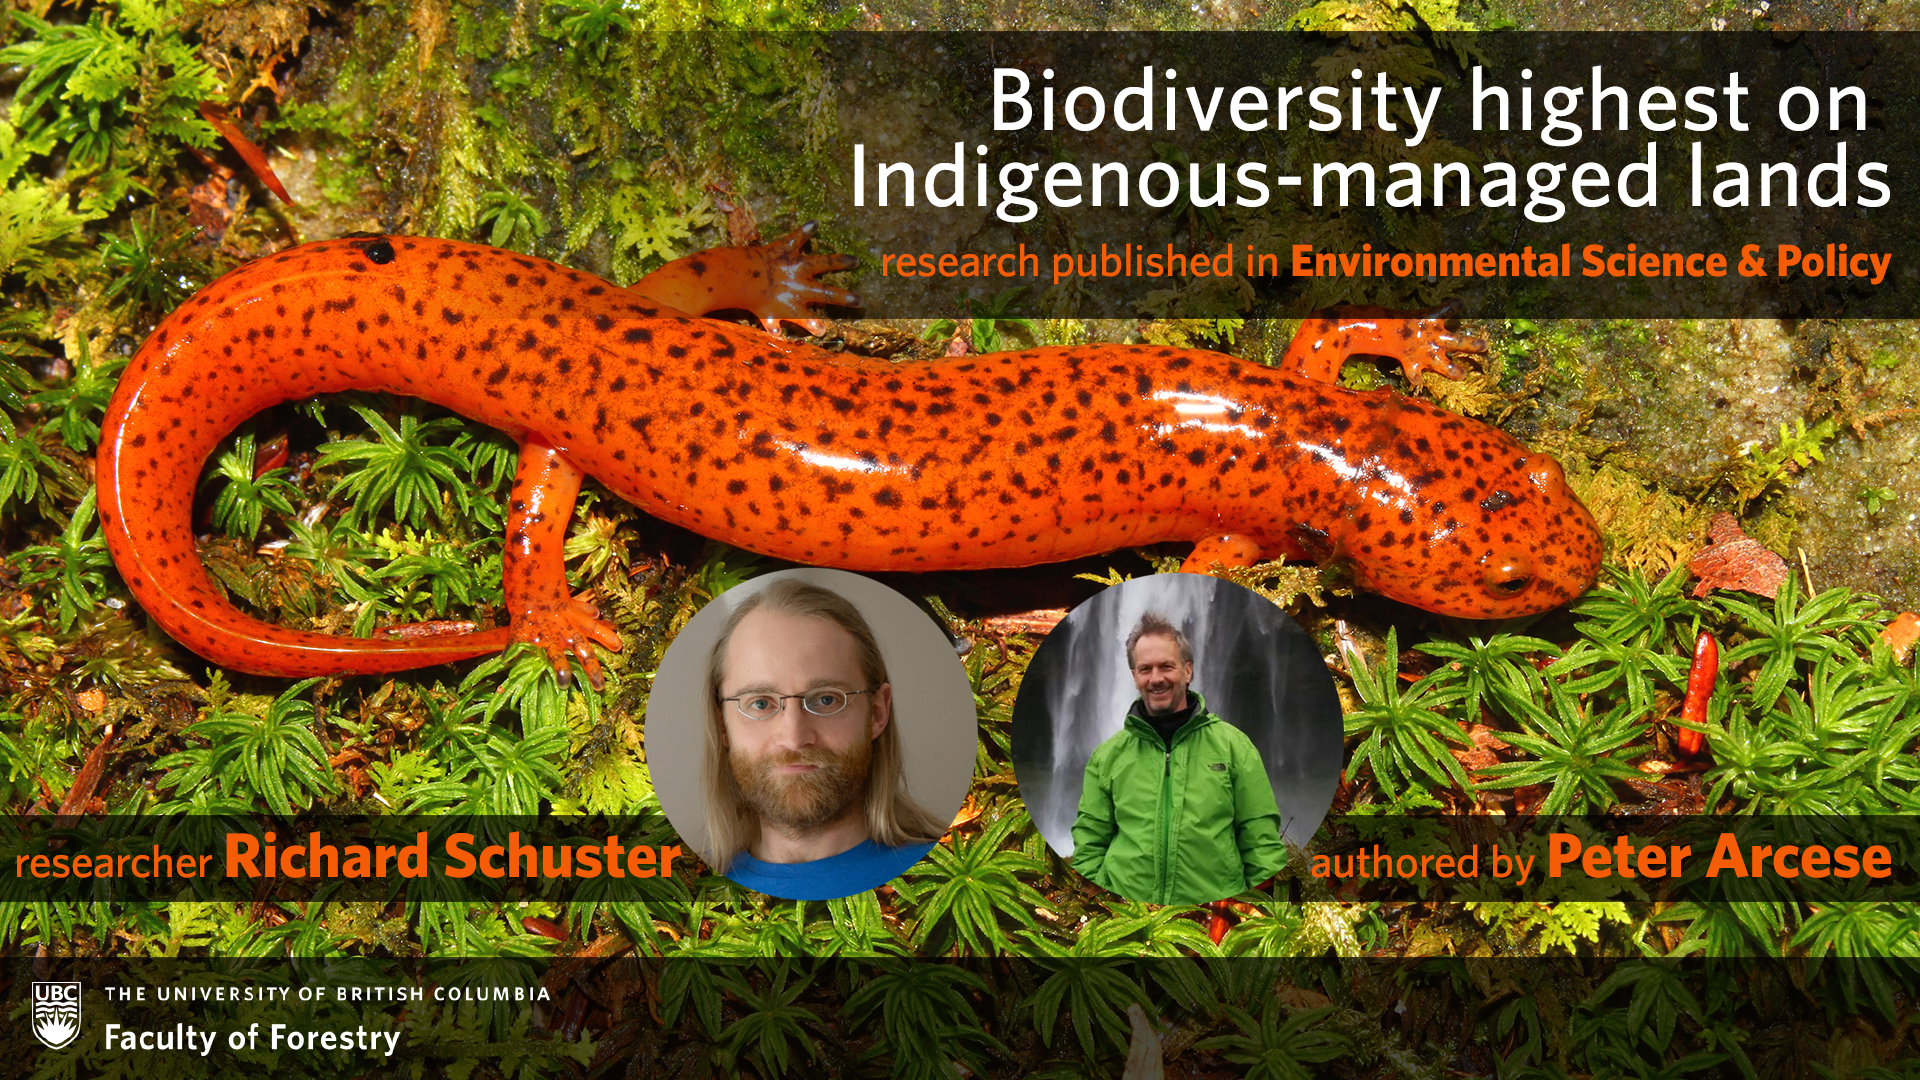 Biodiversity highest on Indigenous-managed lands